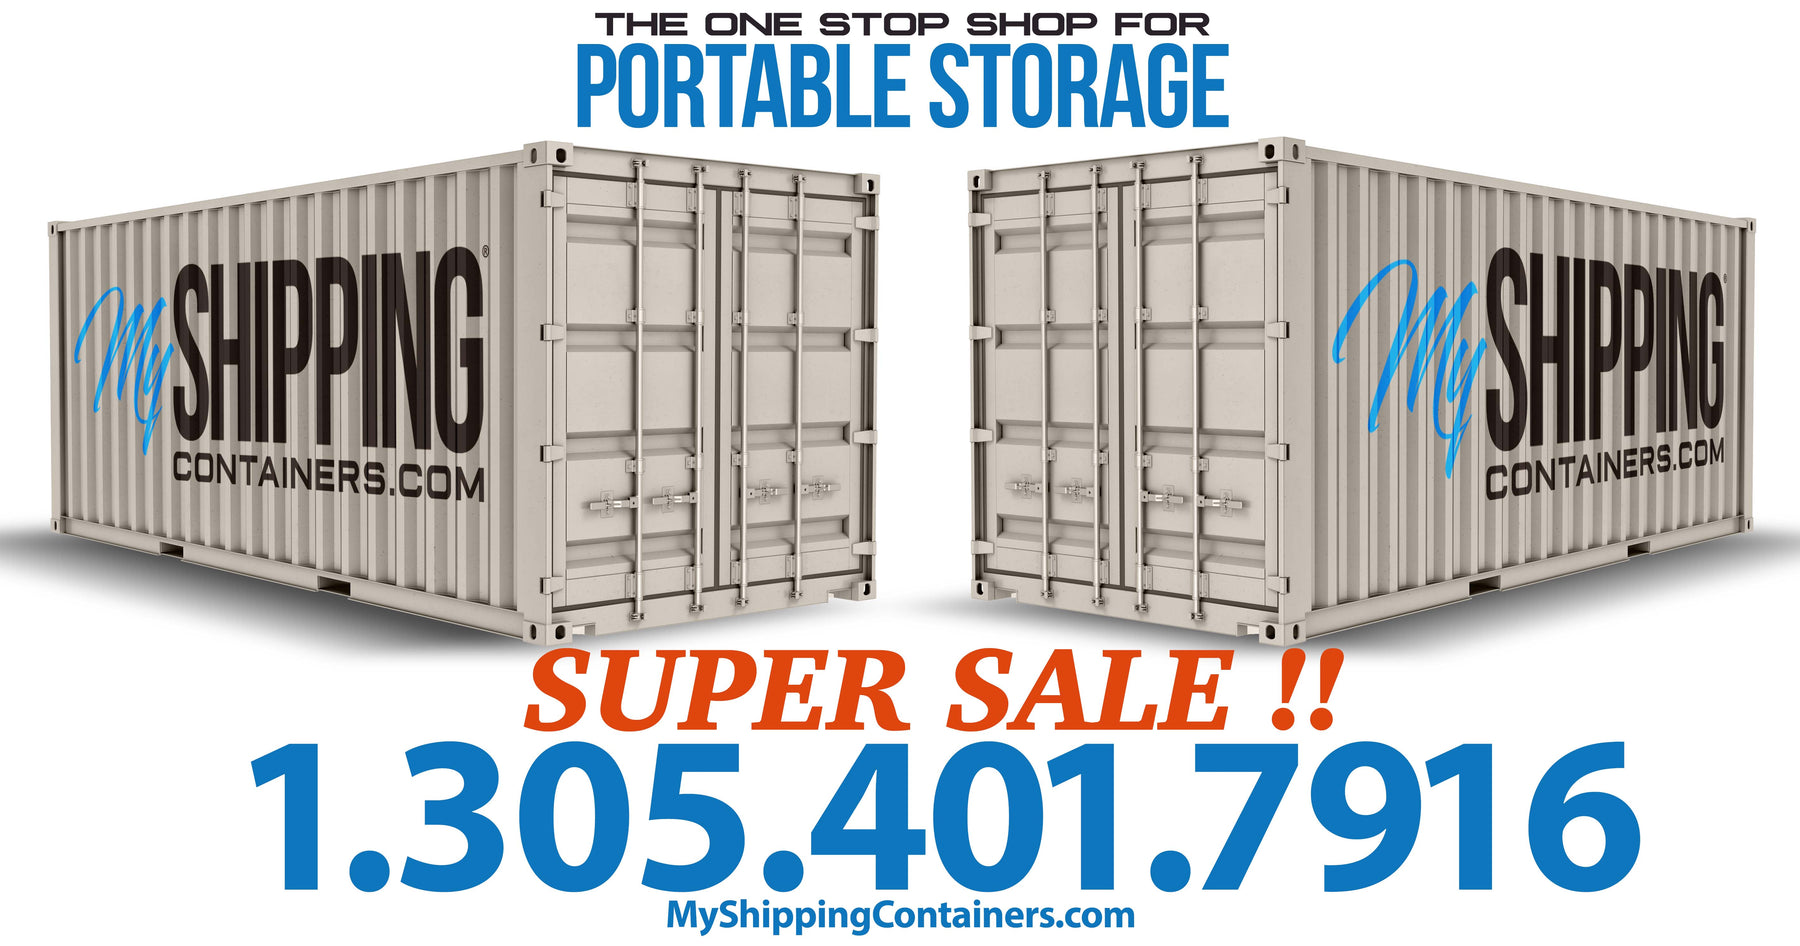 Shipping Containers Miami, Storage Containers Miami, My Shipping Containers